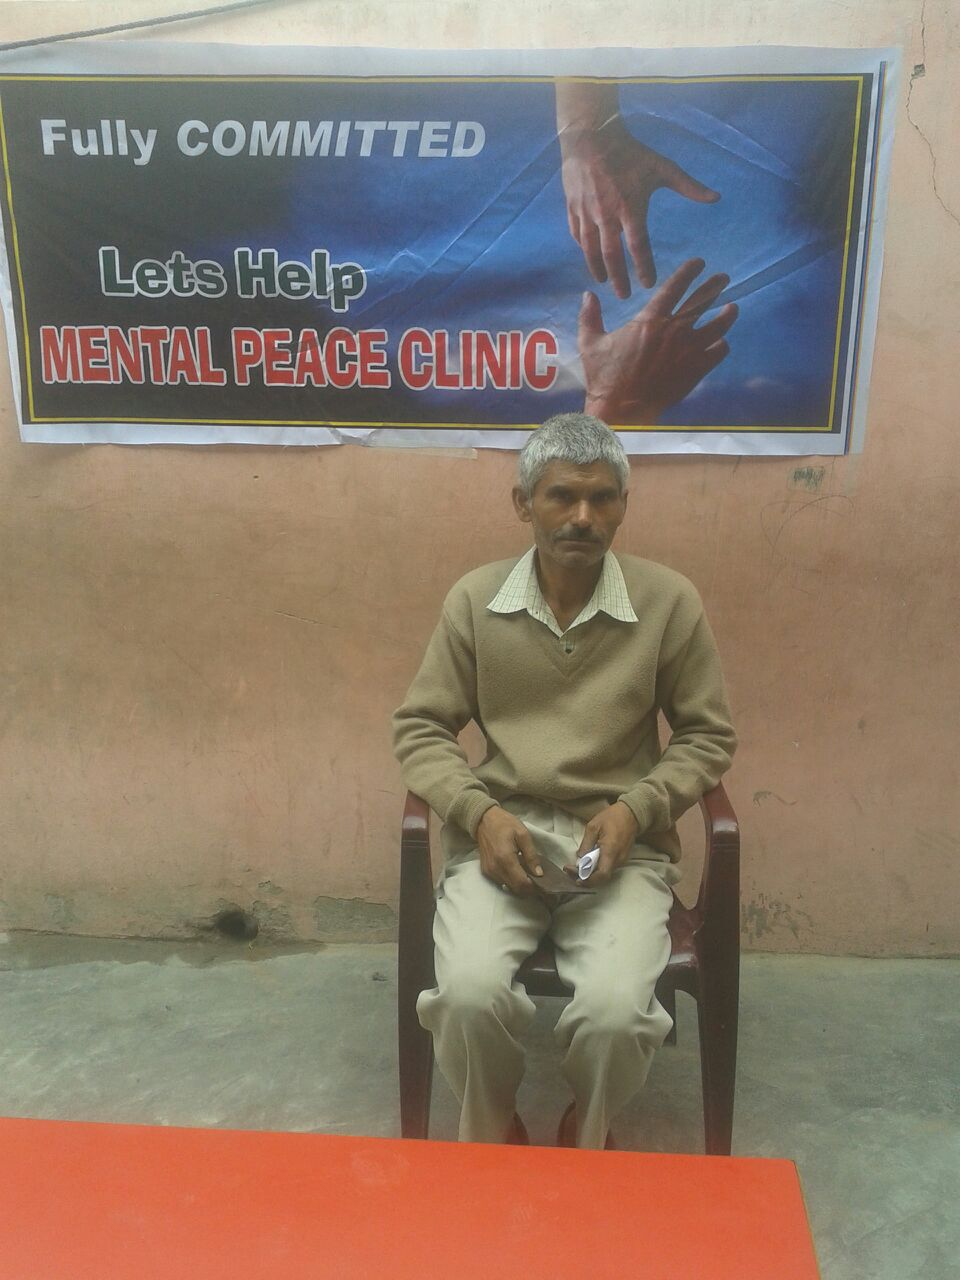 This is Mohinder. One of our clinicians diagnosed him with depression. He has been attending weekly therapy session arranged for by our staff.